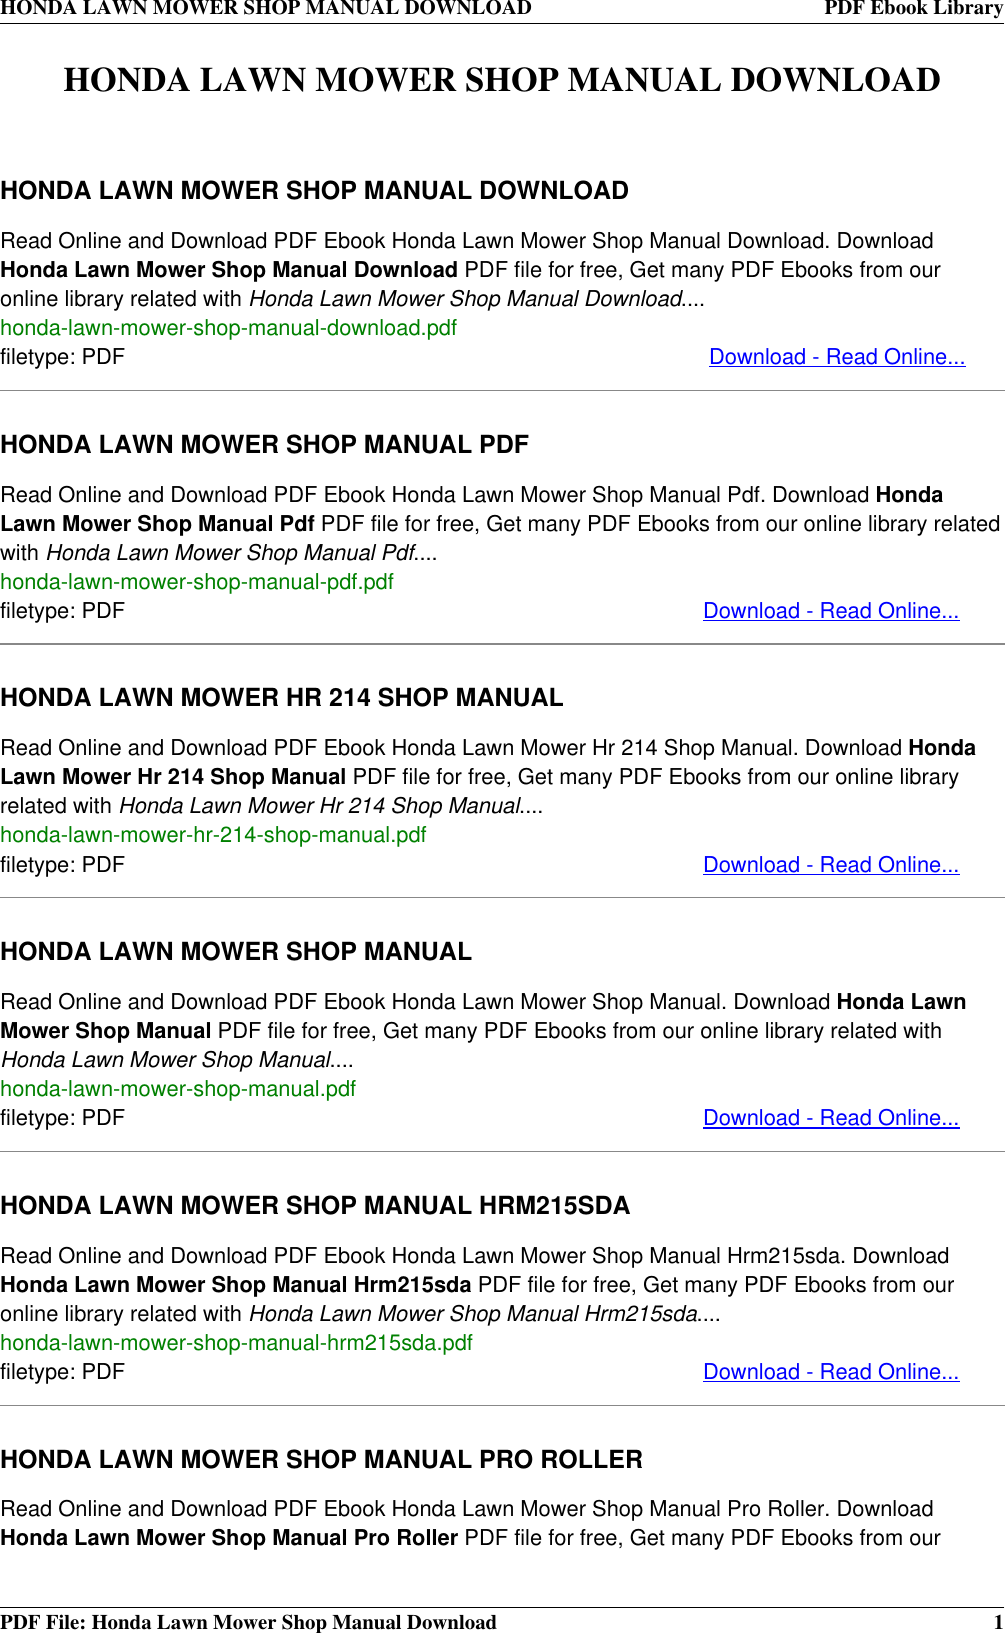 honda manual book download ebook